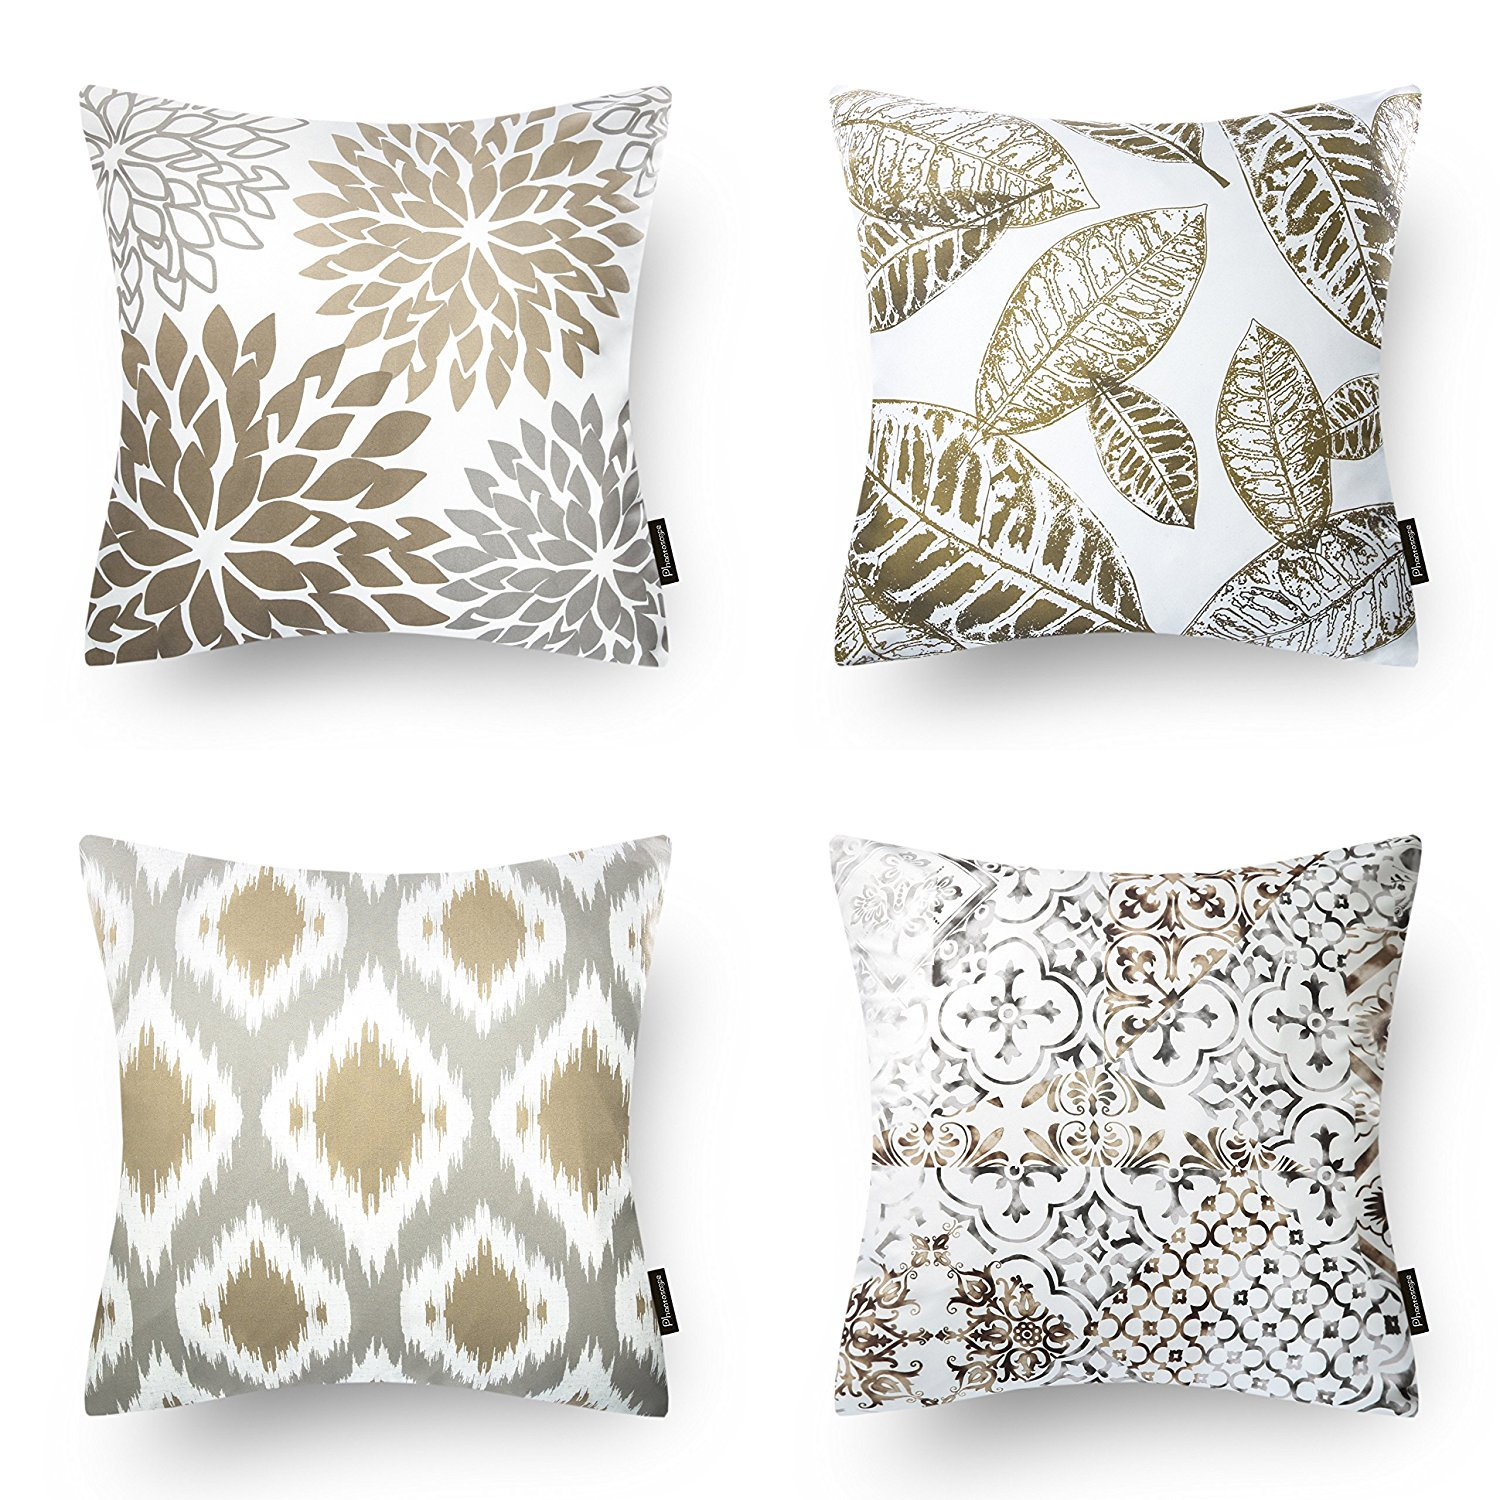 set of 4 Phantoscope Throw pillow covers New Home Living Coffee Color Decorative Throw Pillow Case Cushion Covers Set of 4